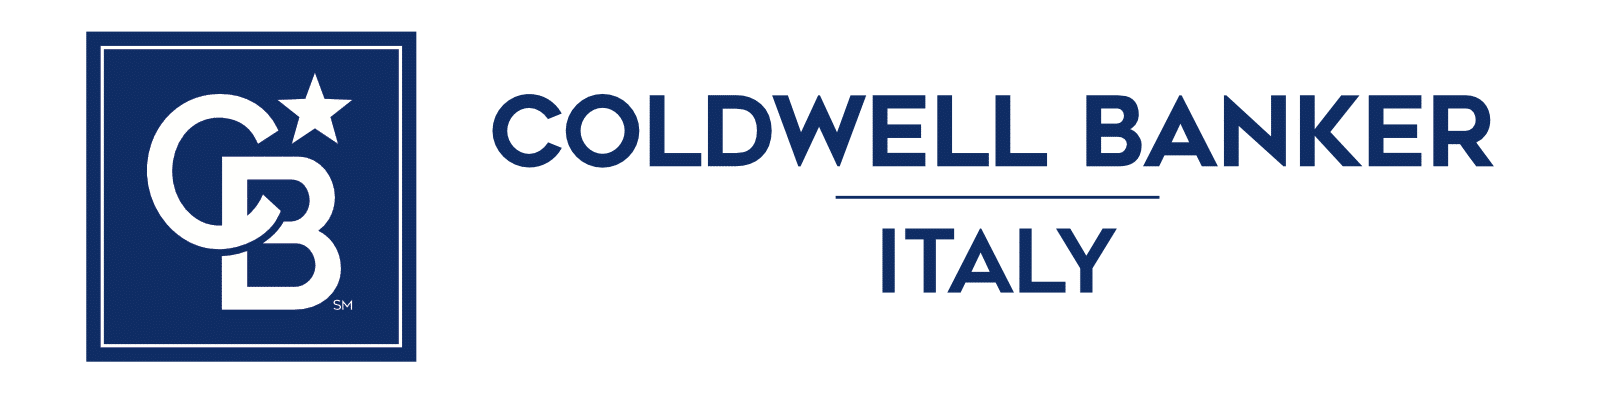 Coldwell Banker Italy news